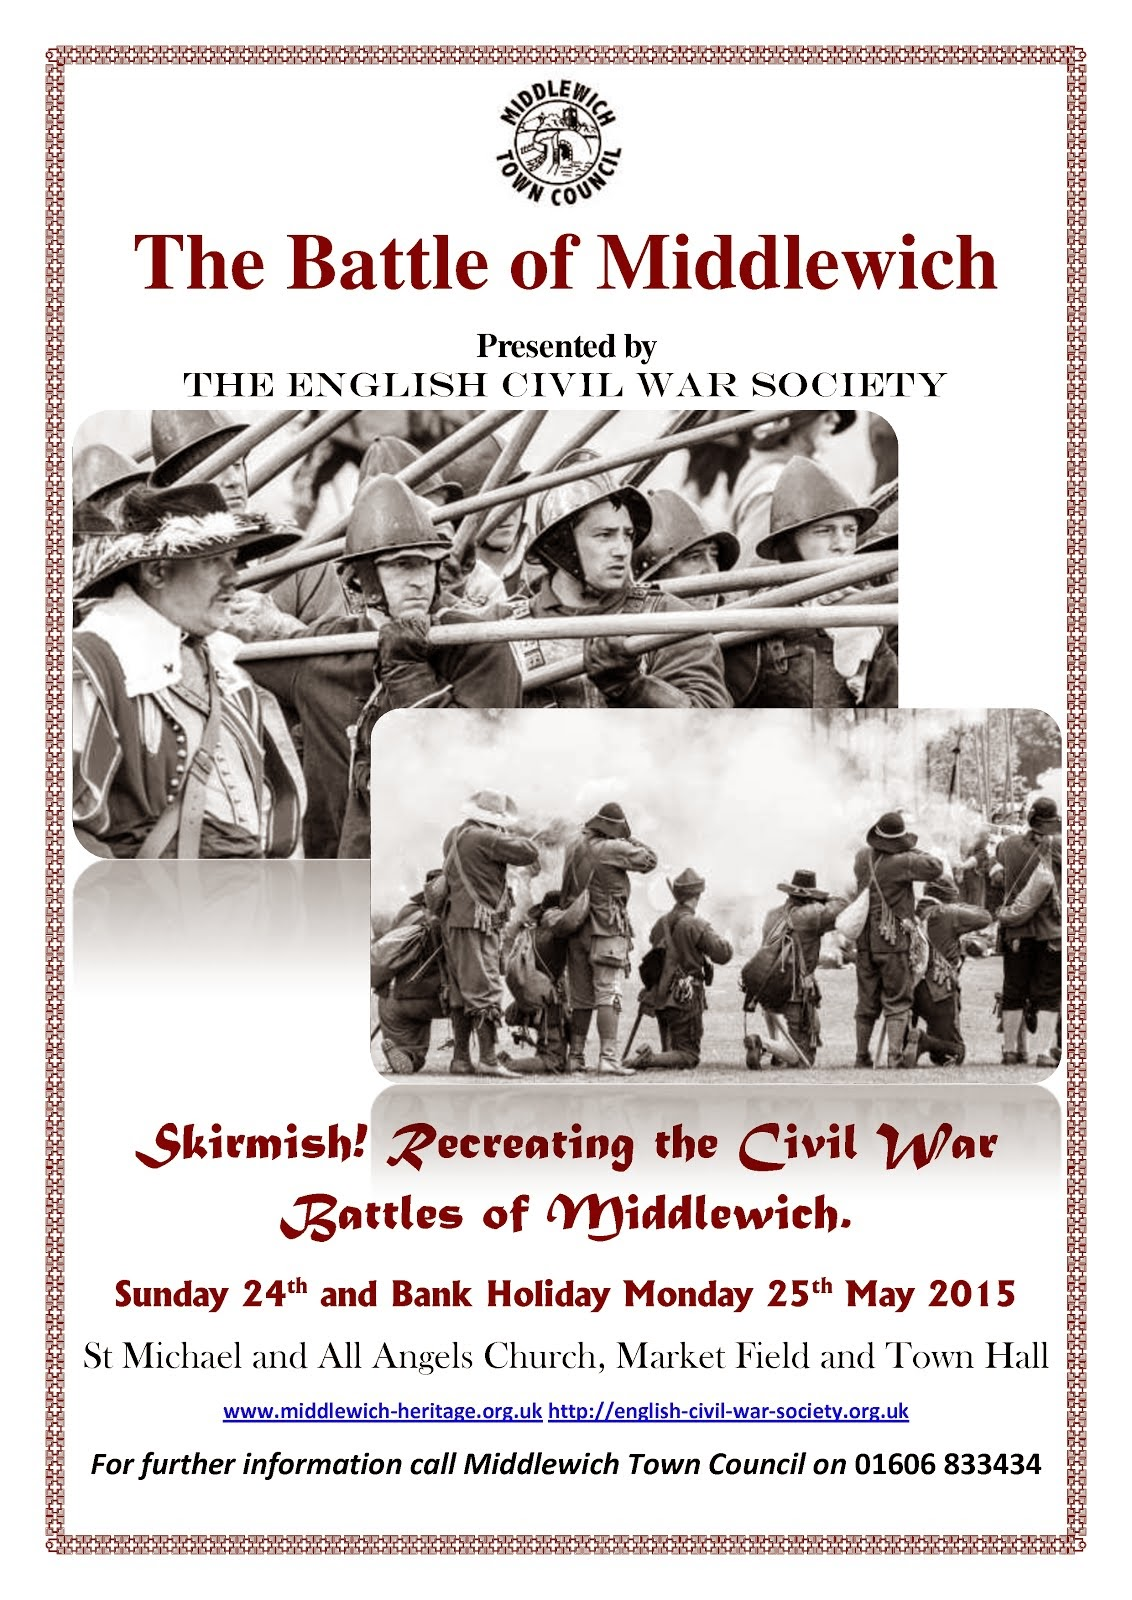 THE BATTLE OF MIDDLEWICH